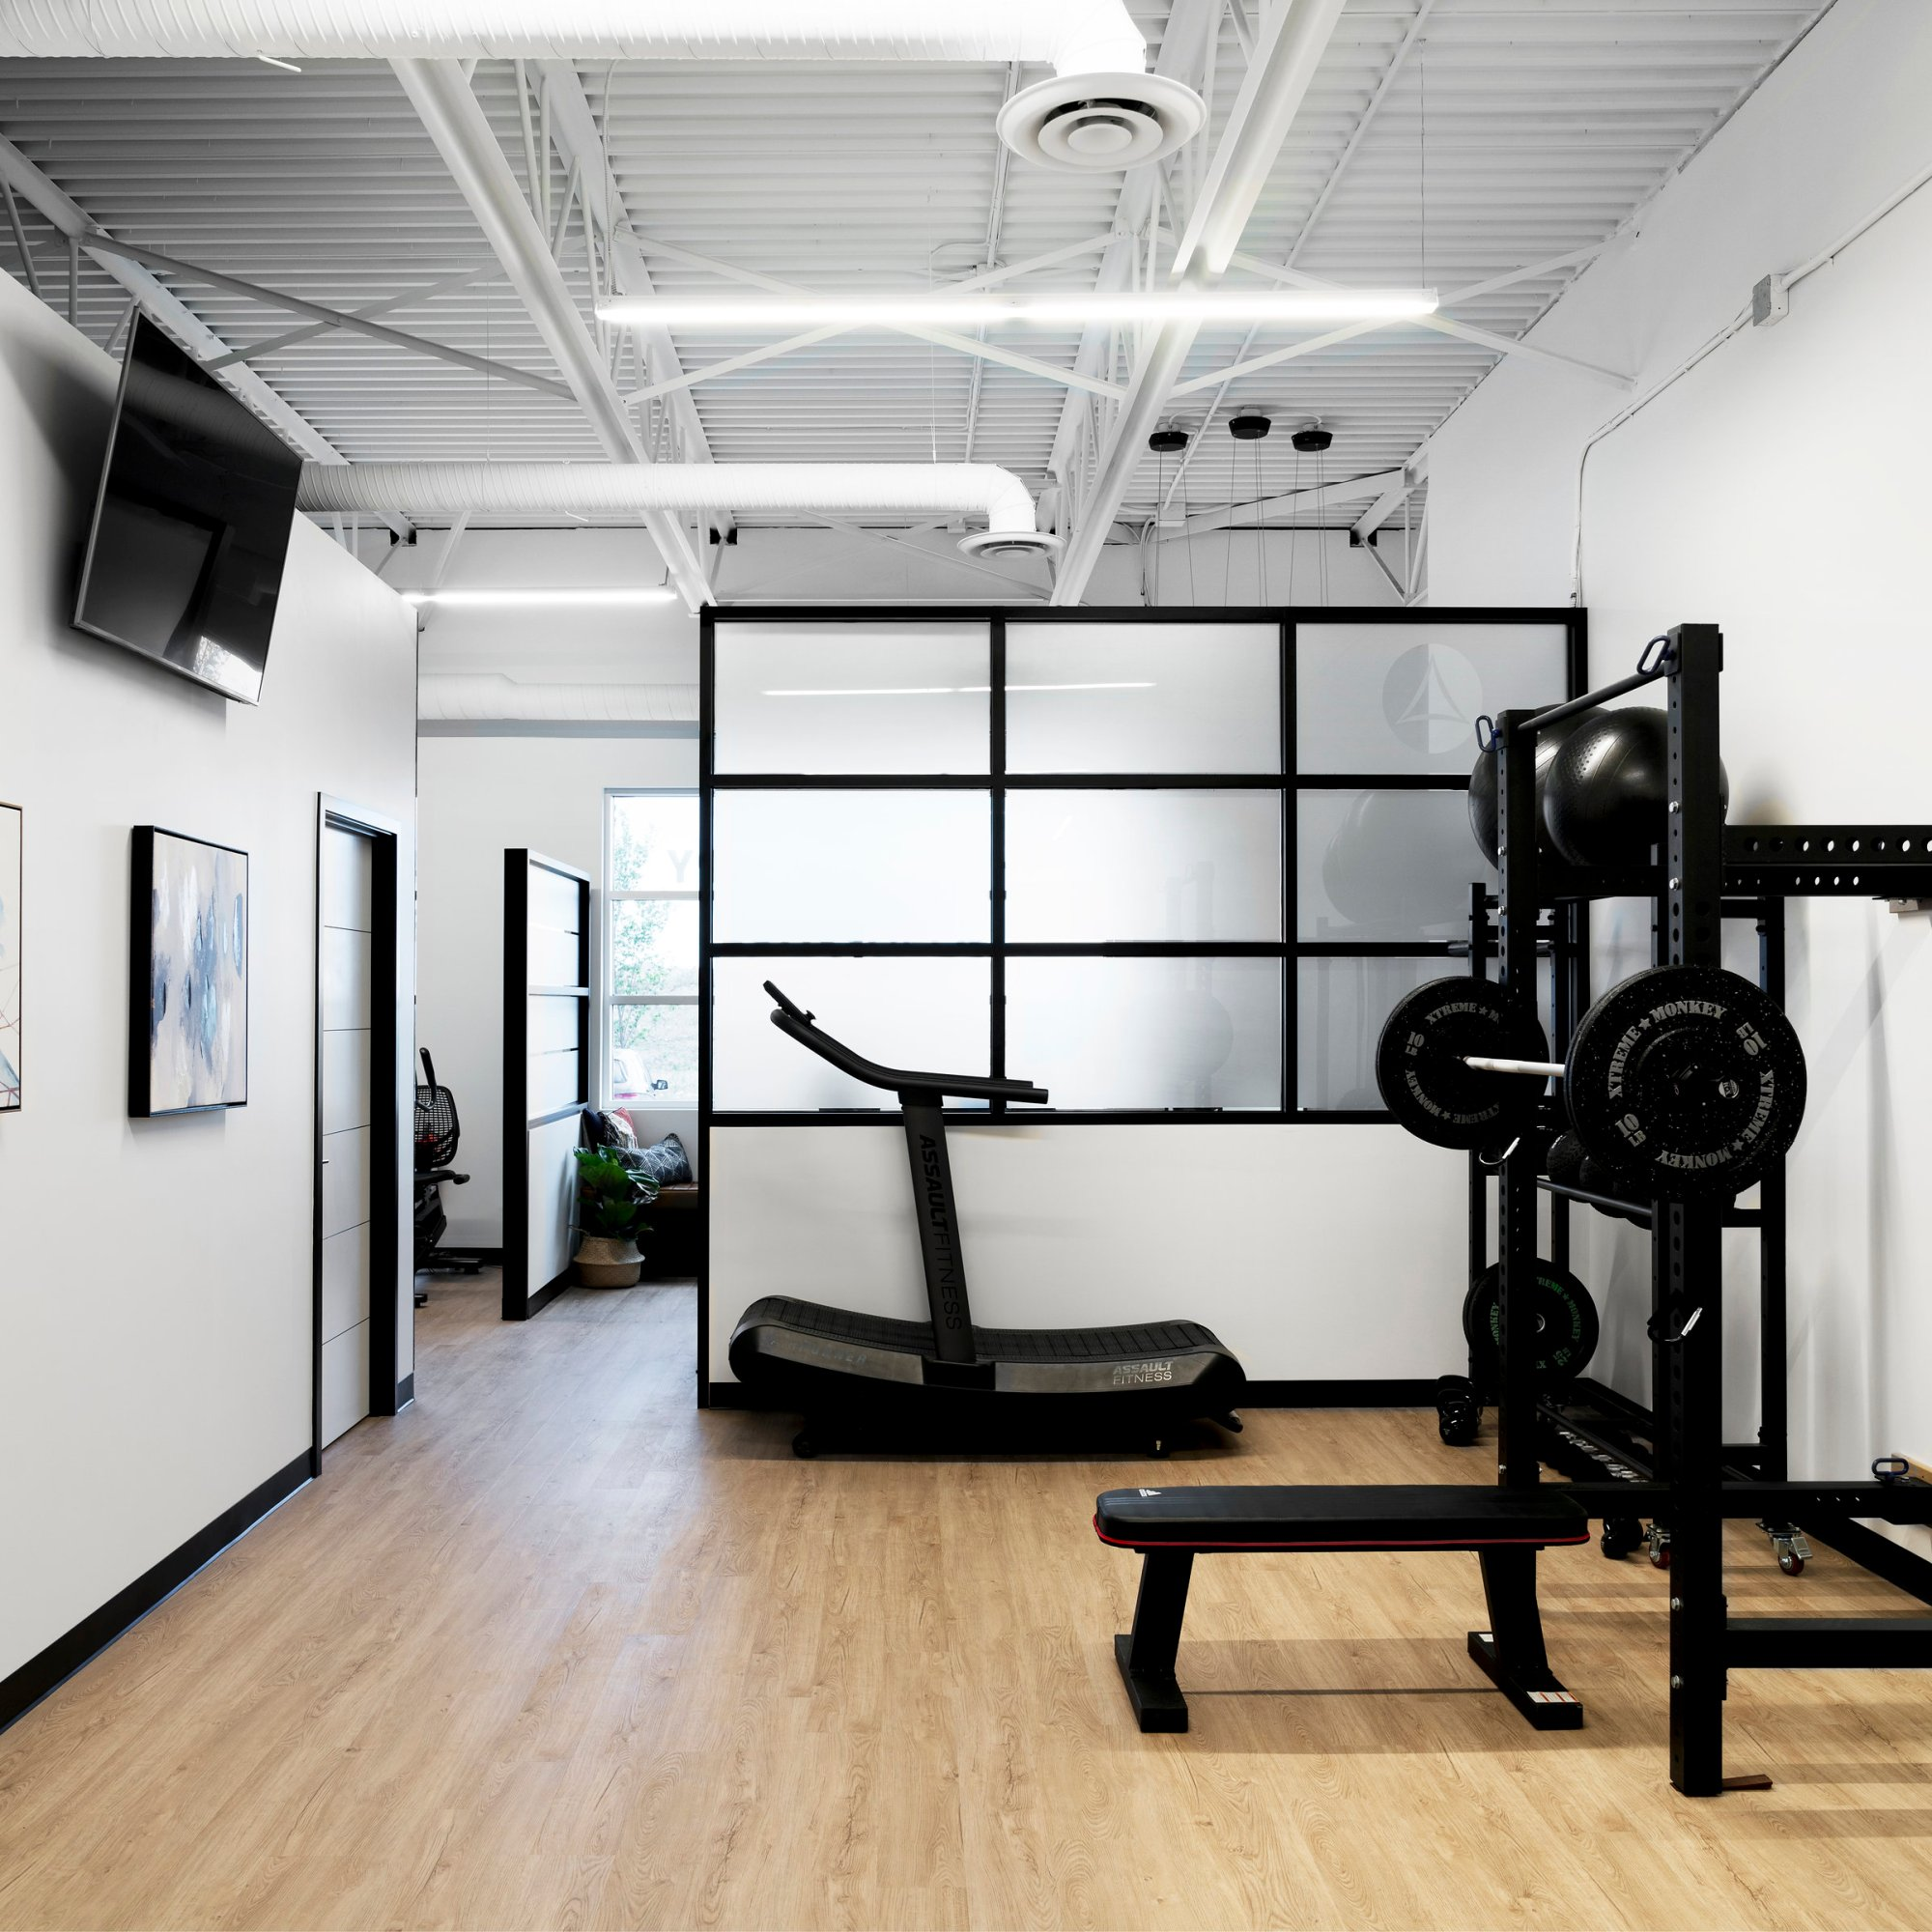 Balance Physiotherapy & Massage gym area